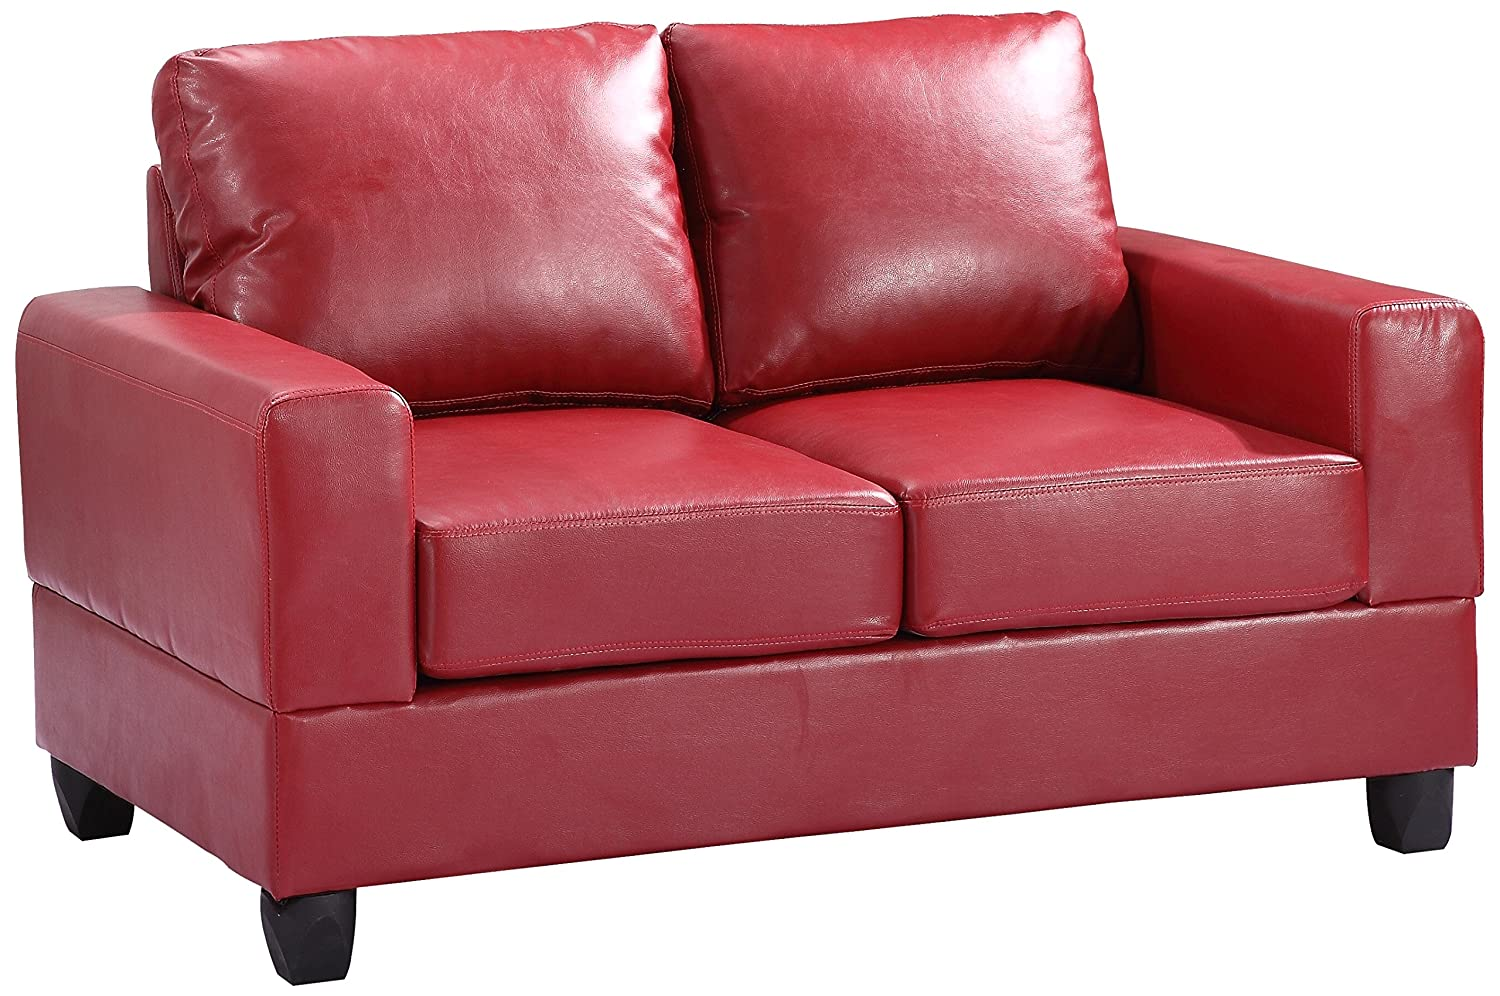 Glory Furniture G309A-L Living Room Love Seat - Red